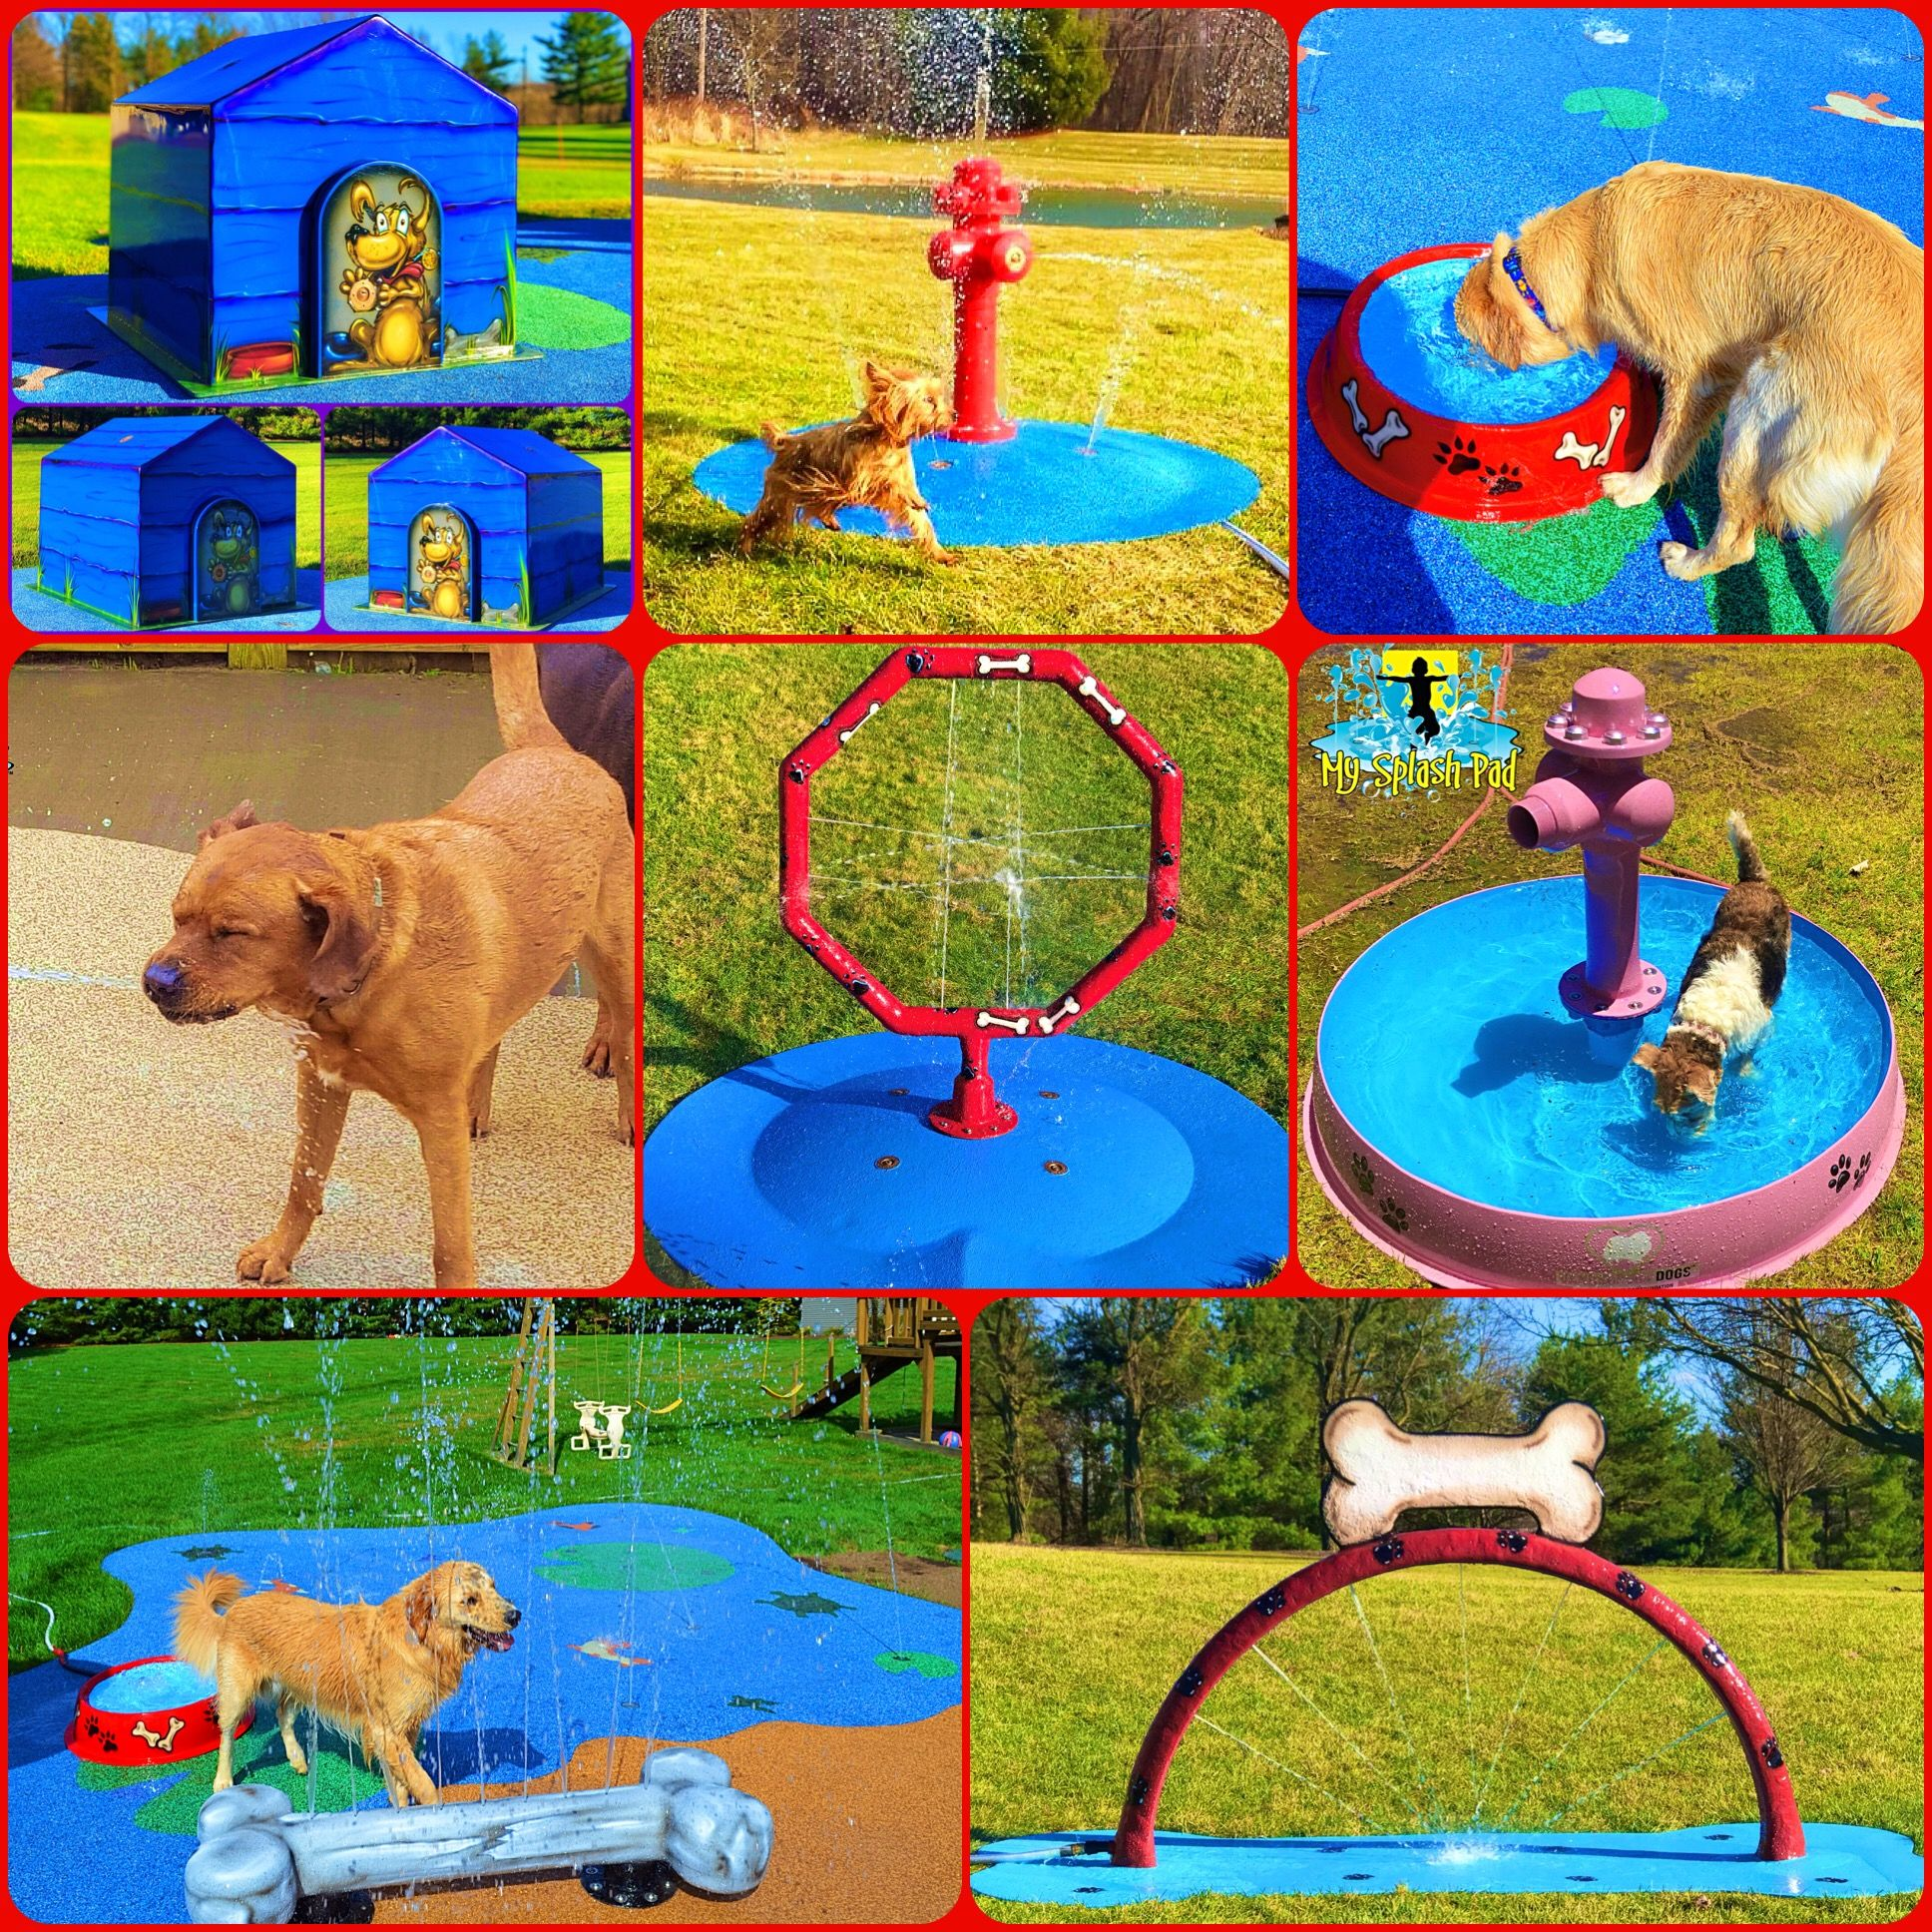 These Portable Splash Pads And Mobile Water Play Features That We Manufacture Are Perfect For Any Dog In Any Backya Dog Playground Dog Backyard Indoor Dog Park